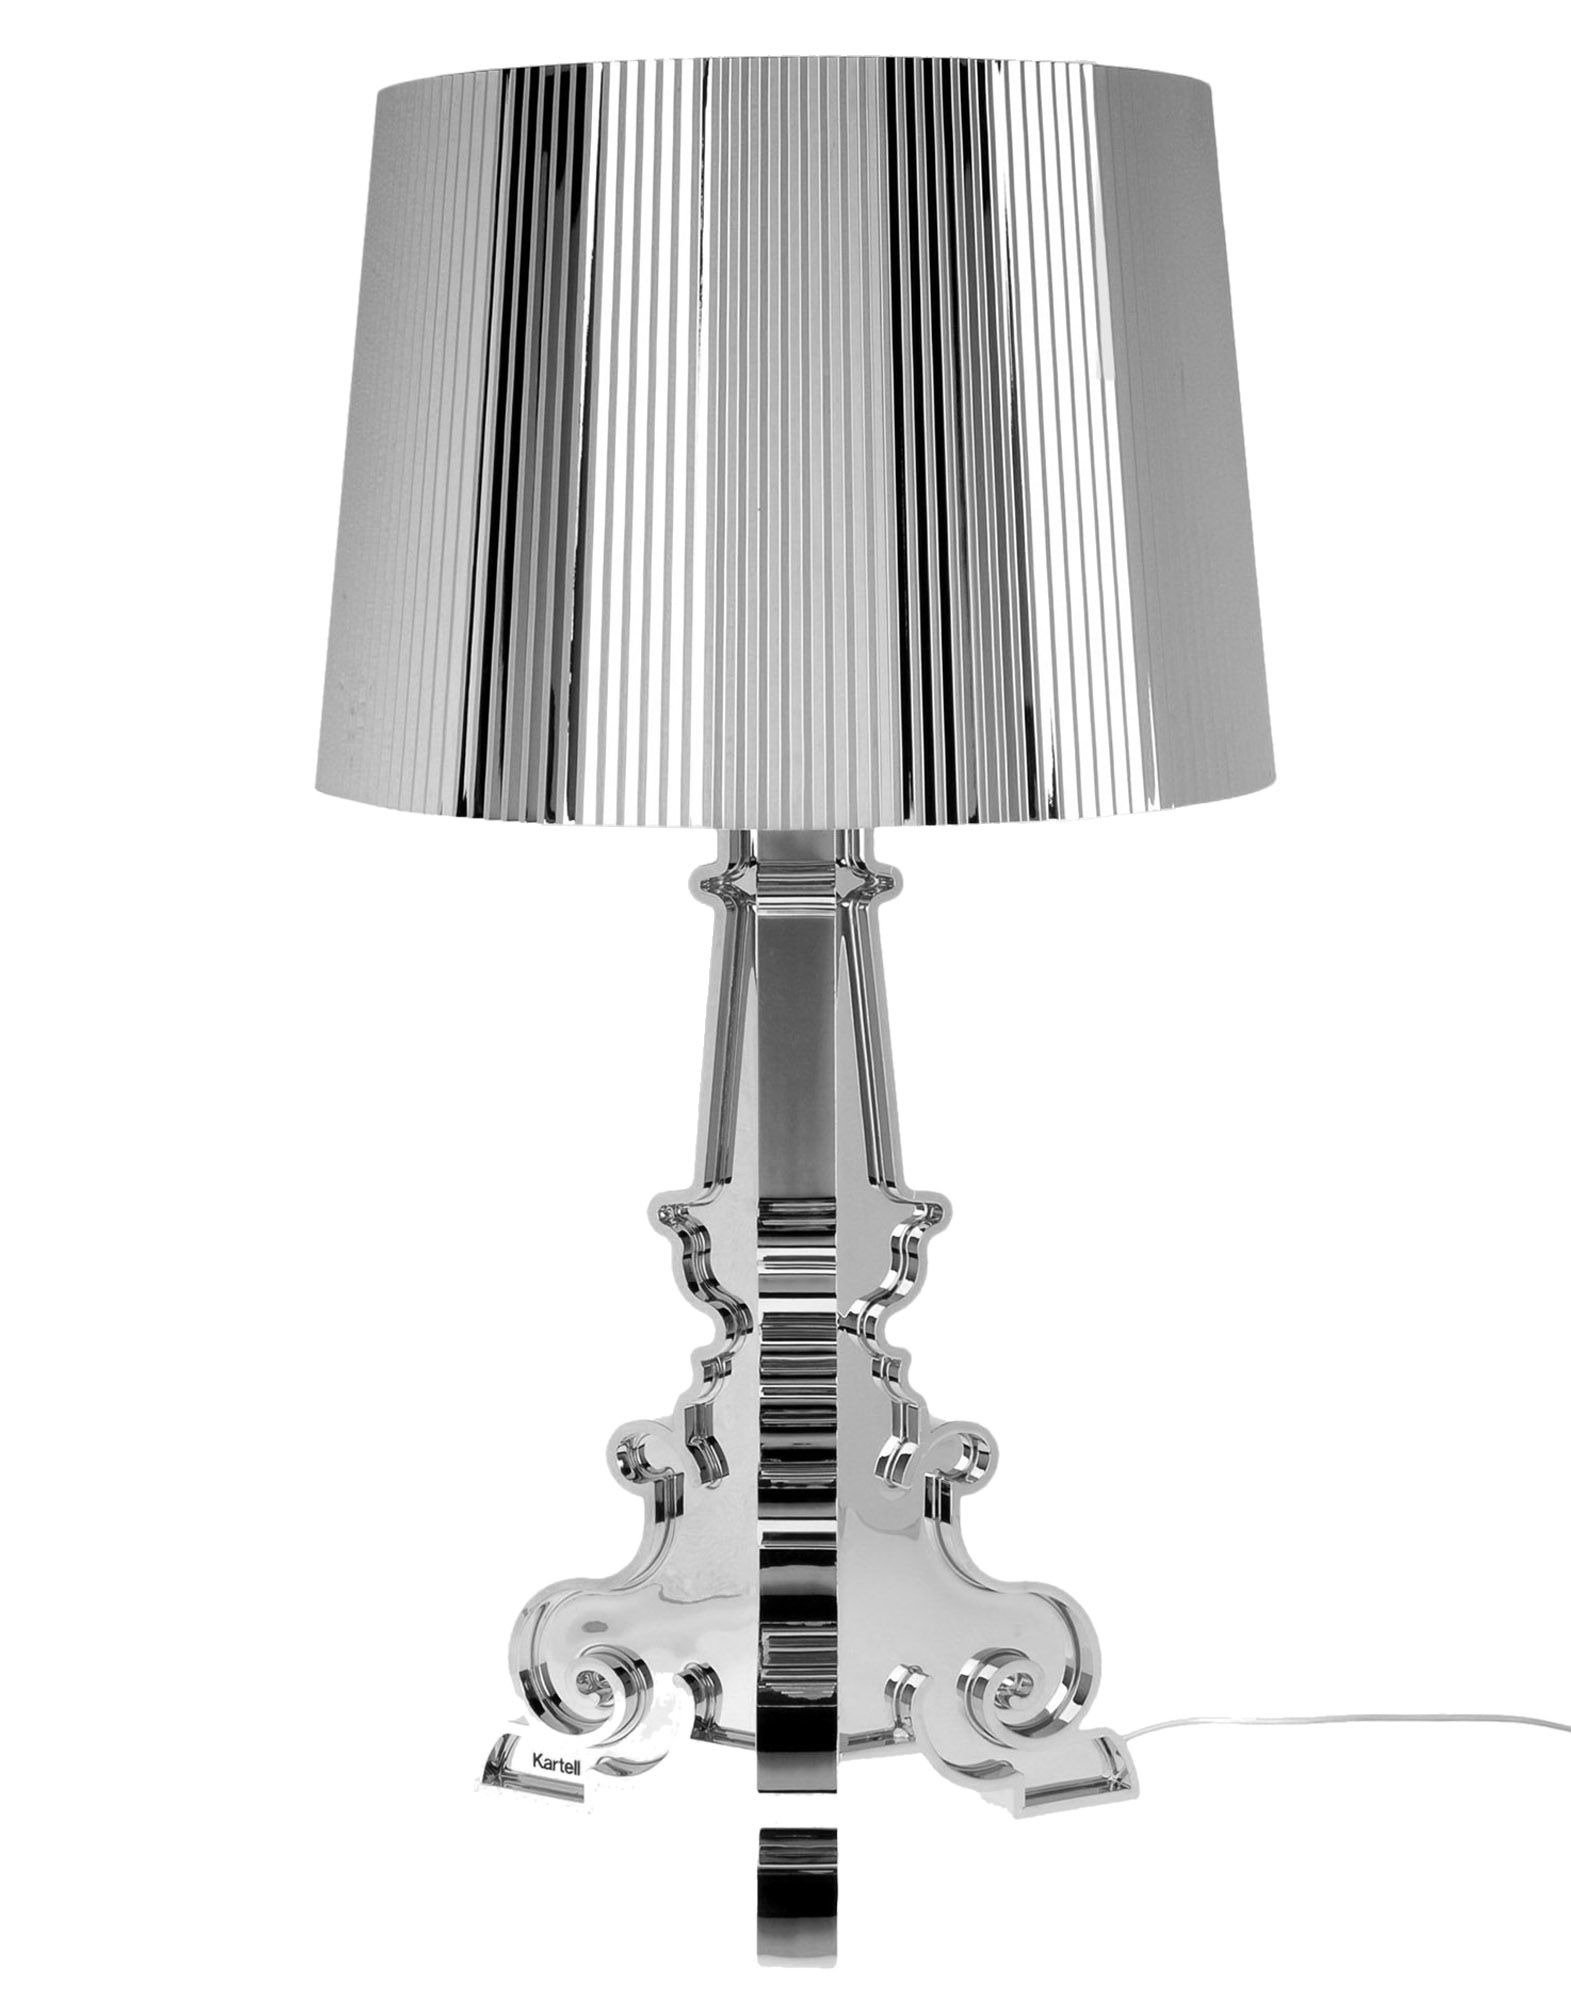 KARTELL Настольная лампа italy modern designer diamond creative art pendant lamp living room bedroom dining room fashion bar led decorative a308